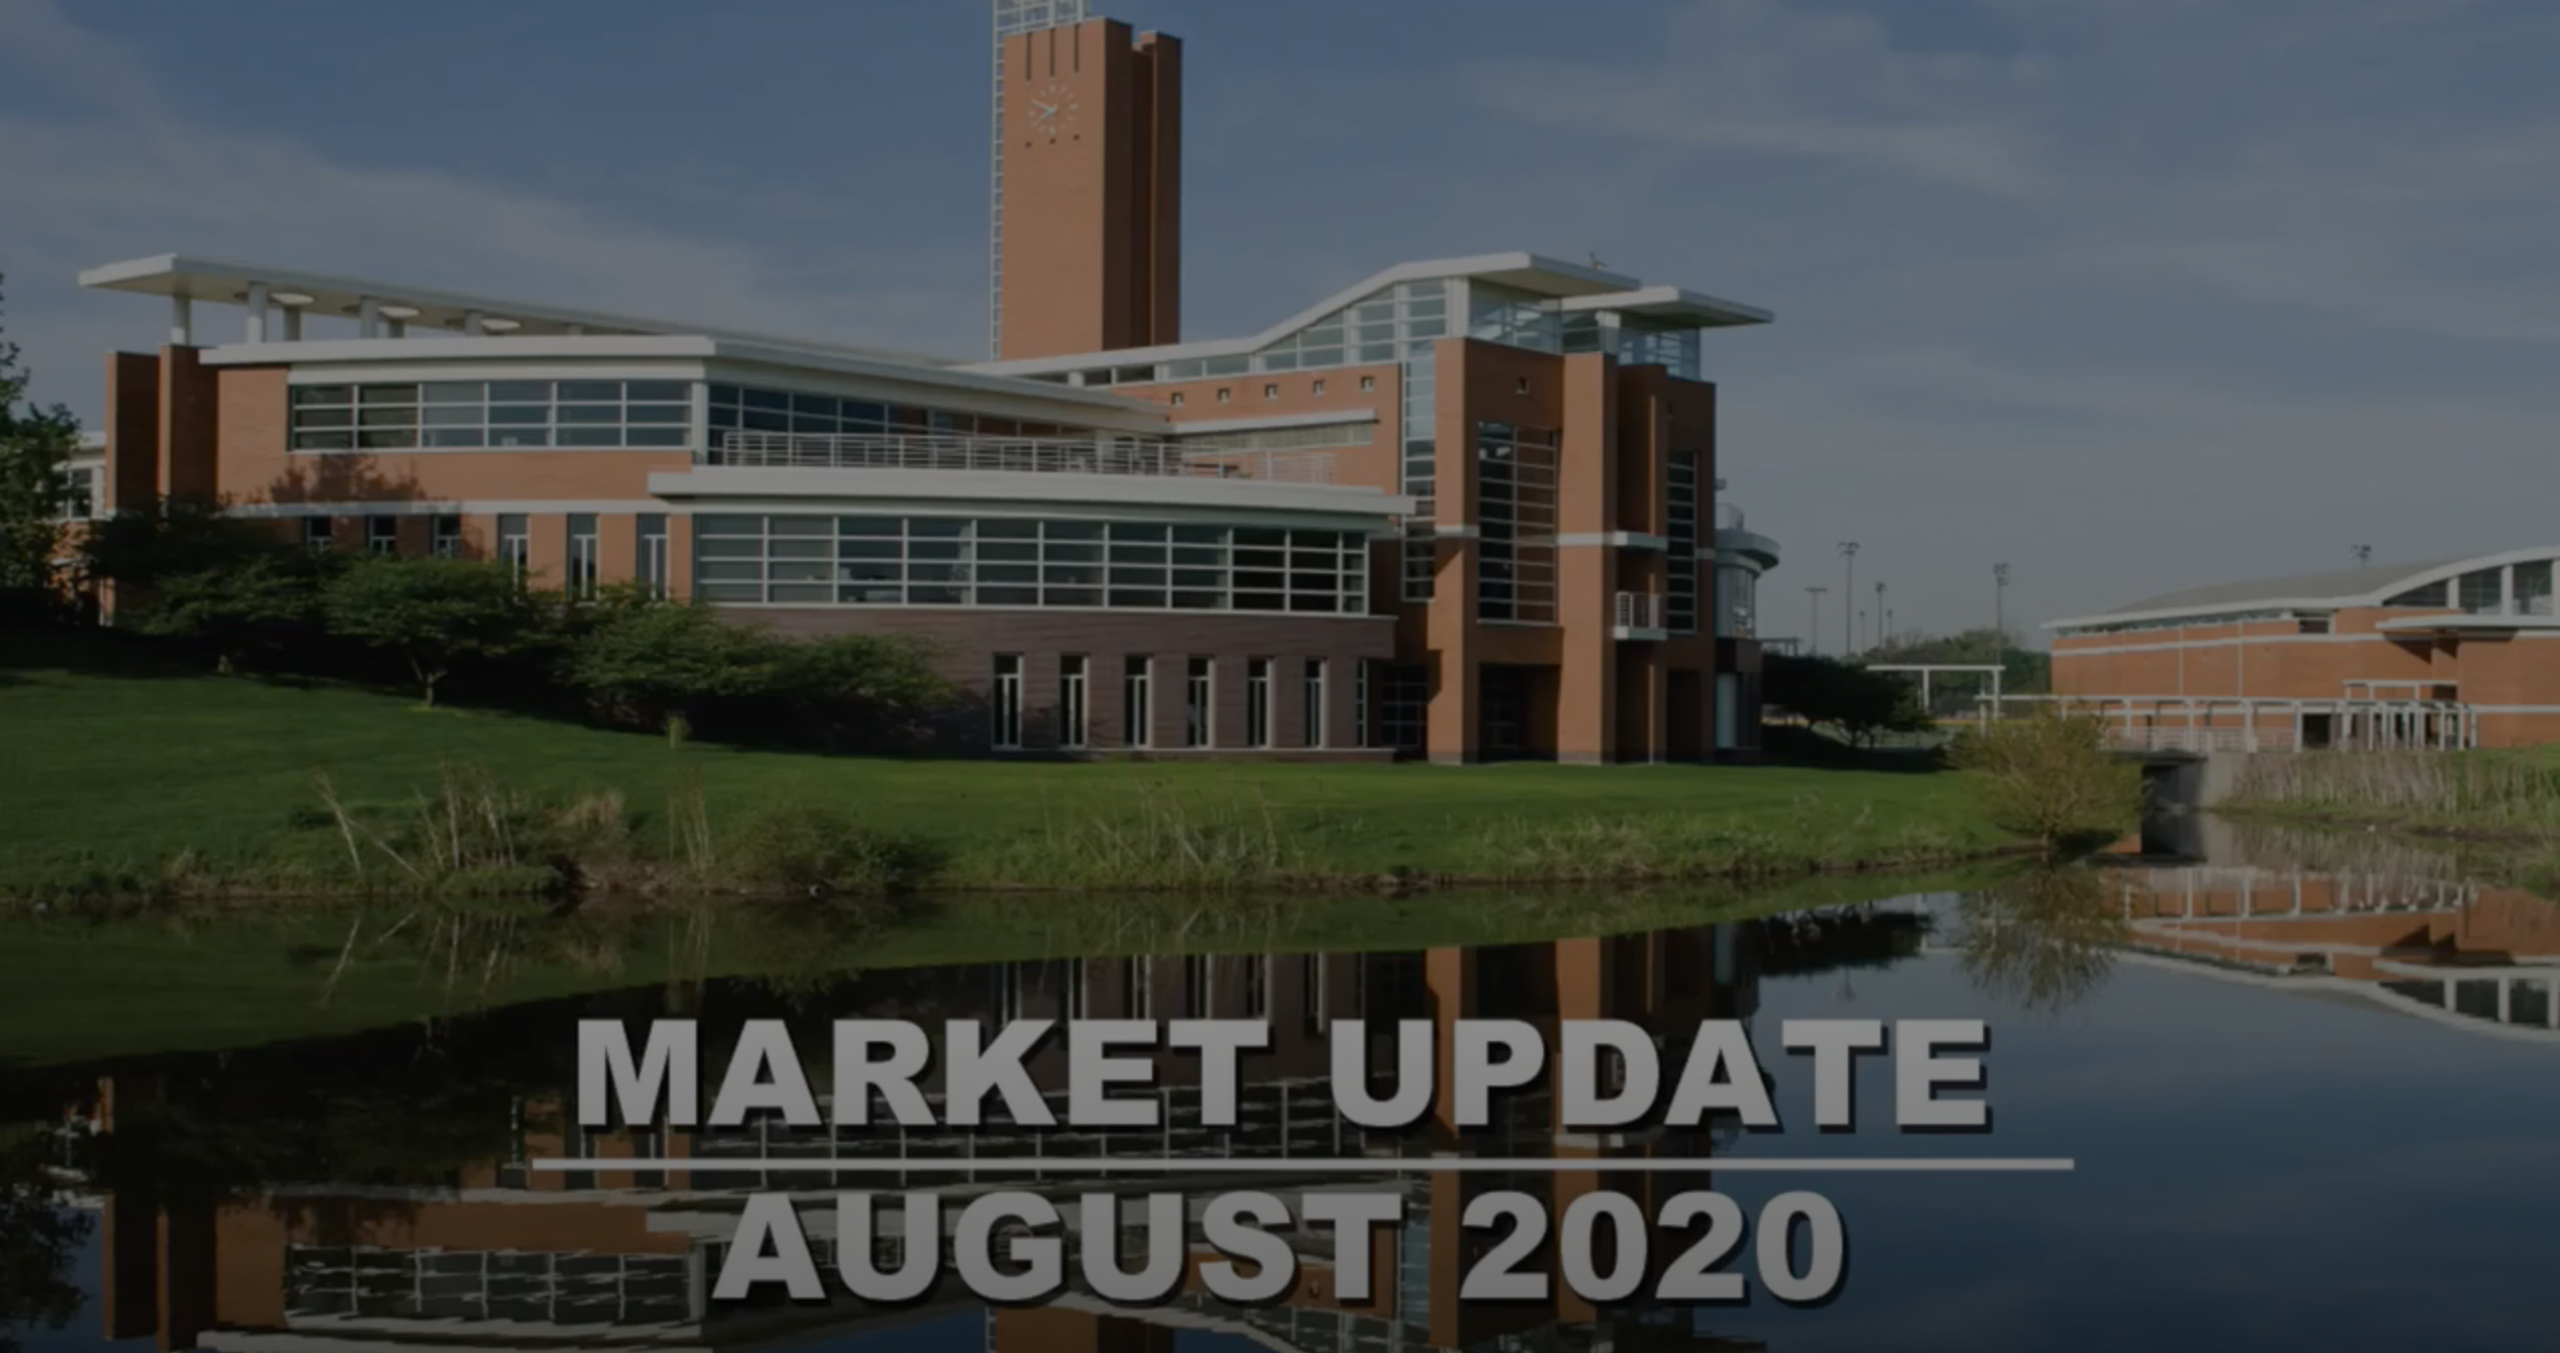 Orland Park and Tinley Park Real Estate Market Update for August 2020